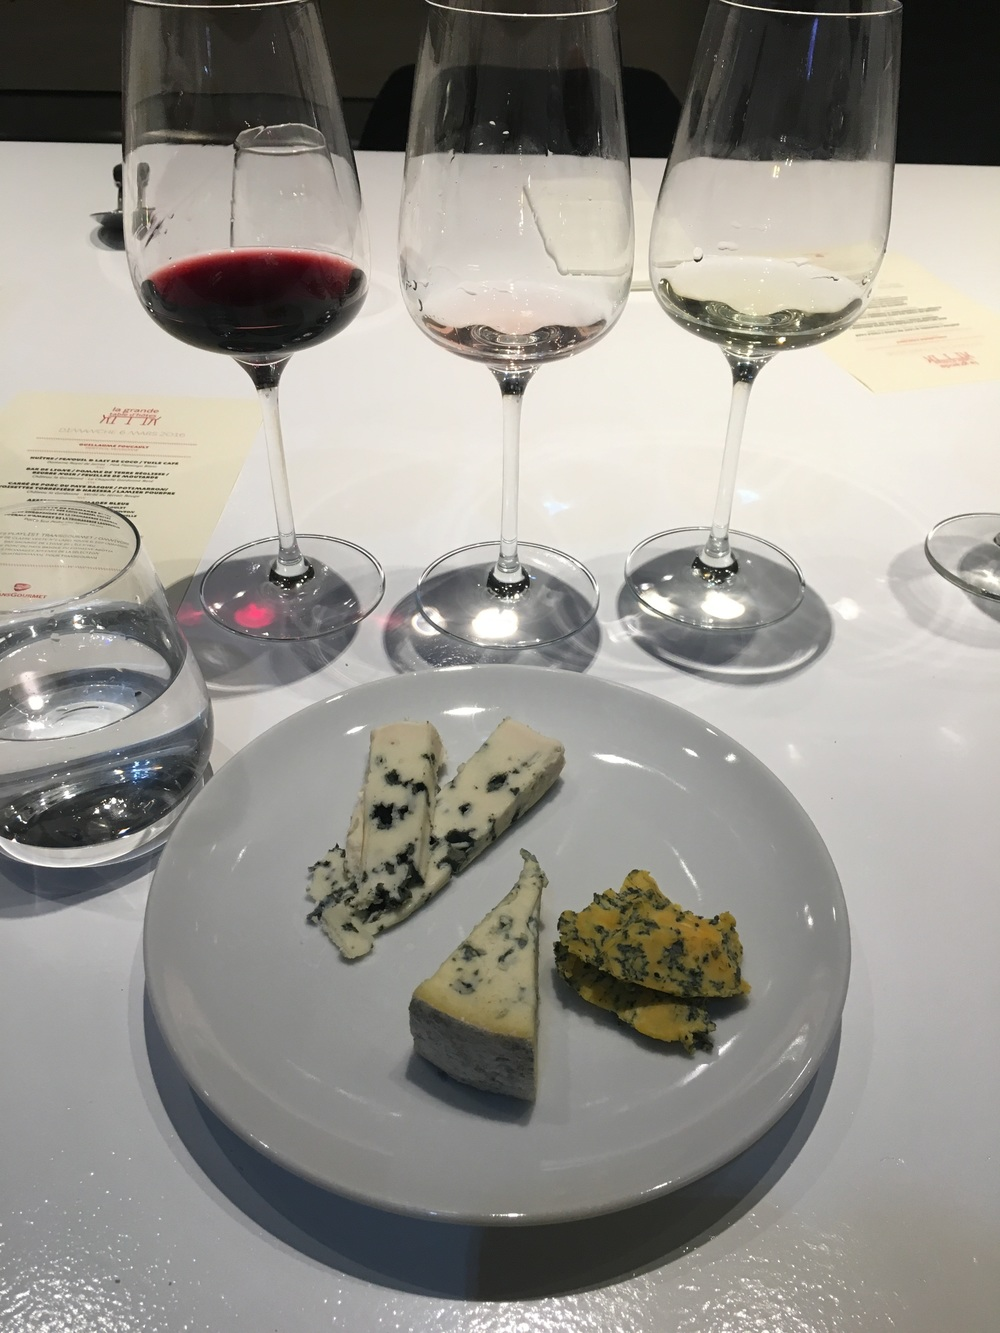 A French thing: finishing with cheese. Does not fail to disappoint me, I love to end a good meal with something sweet...